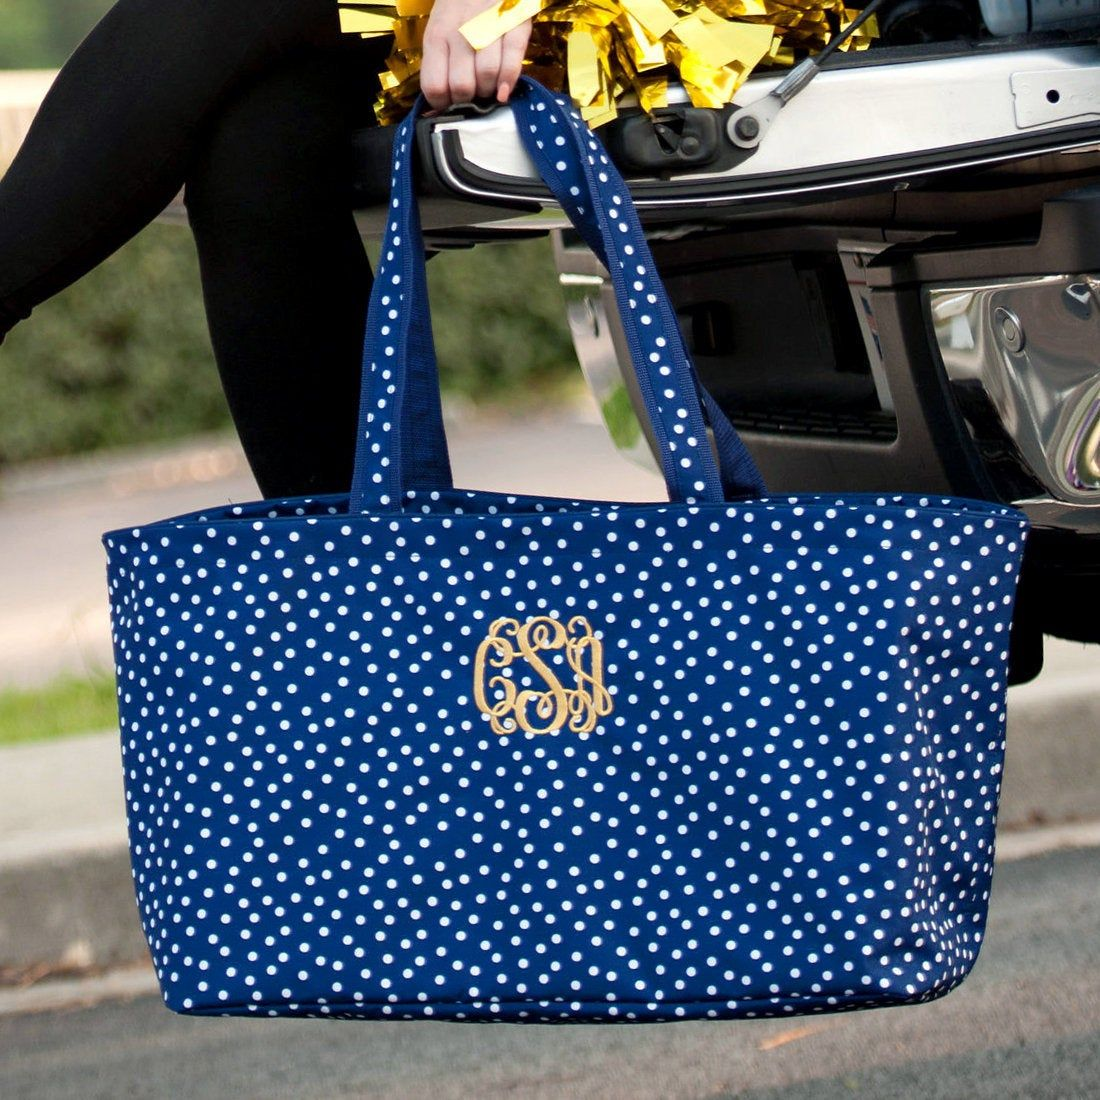 Personalized Tote Bag Ultimate Tote Tailgaiting Monogrammed X-Large Tote Bag Oversized Tote Beach Bag Personalized